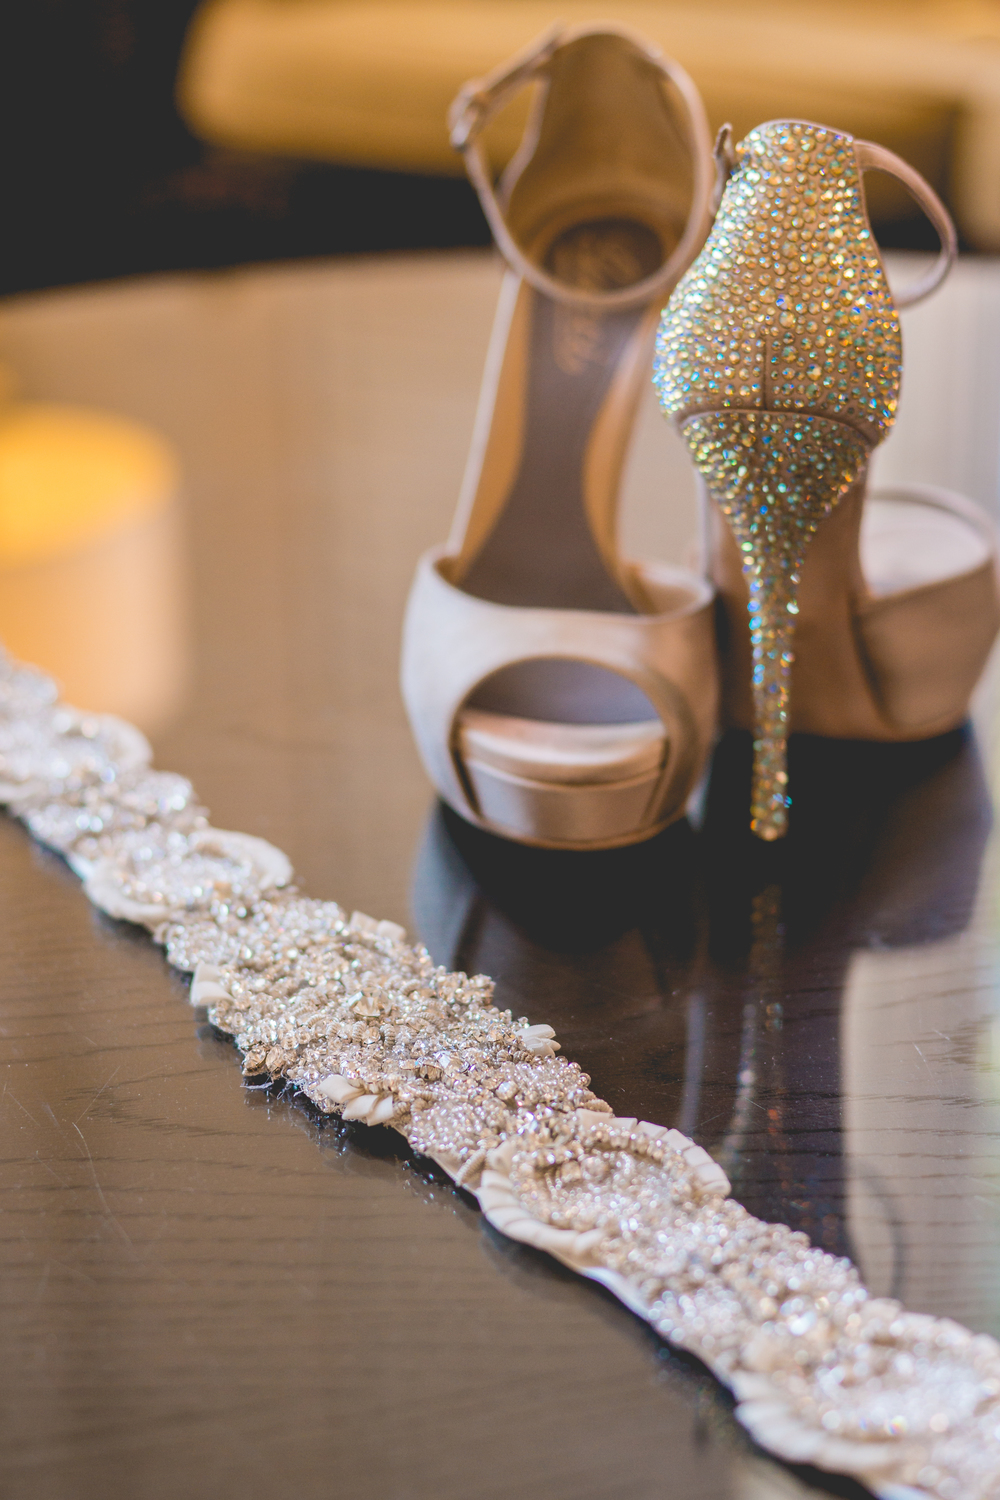 Gucci Shoes and Untamed Petals by Amanda Judge Sash